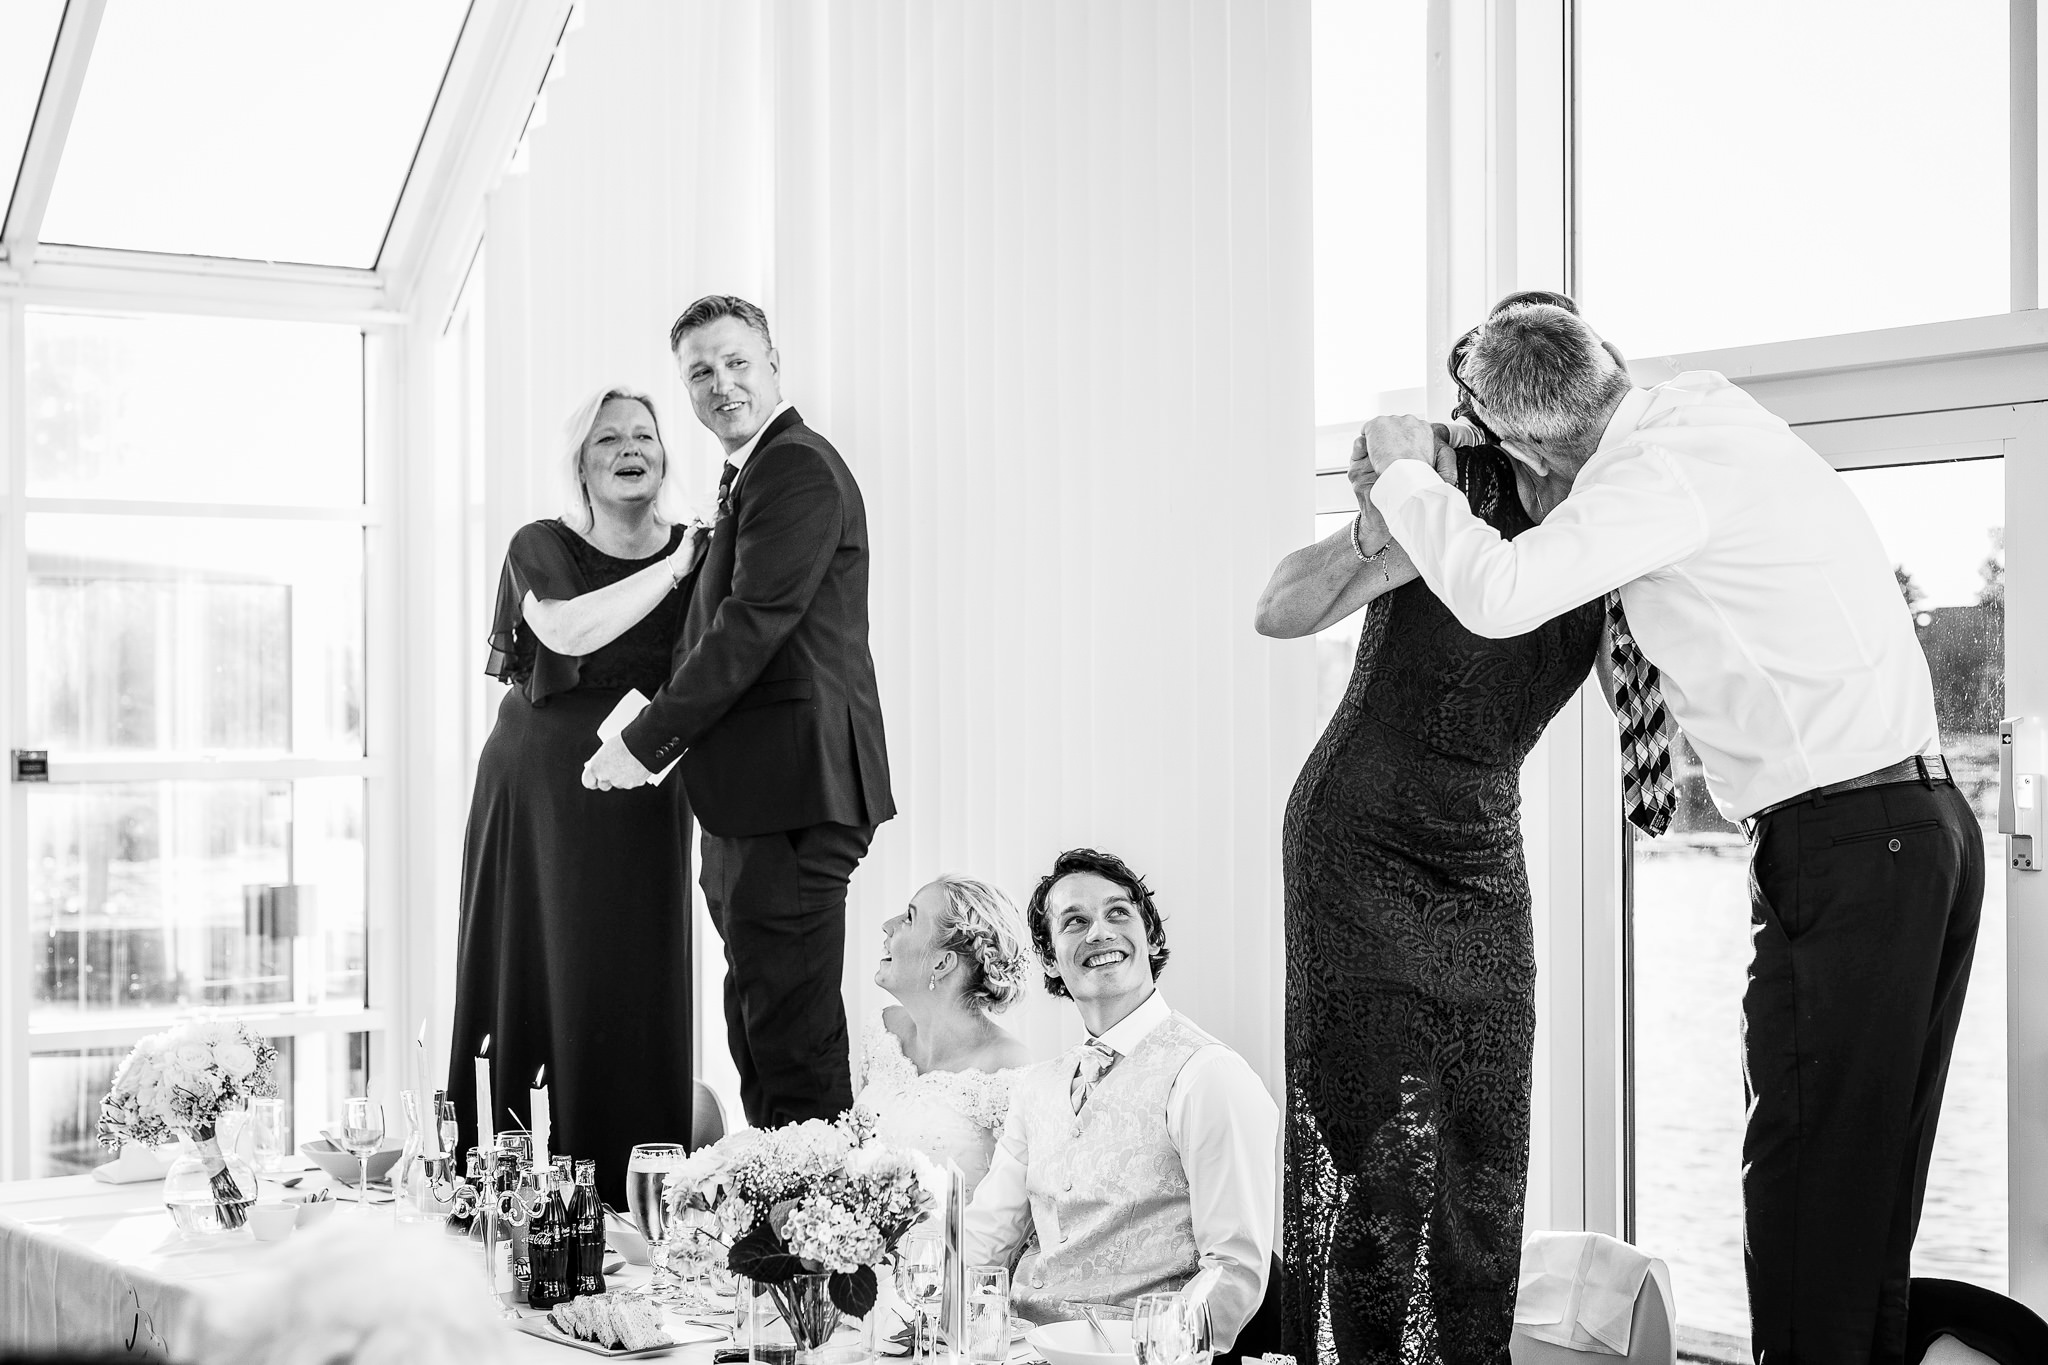 Norway+wedding+photographer+elopement+pre+wedding+Rogaland+bryllupsfotograf+Casey+Arneson-179.jpg